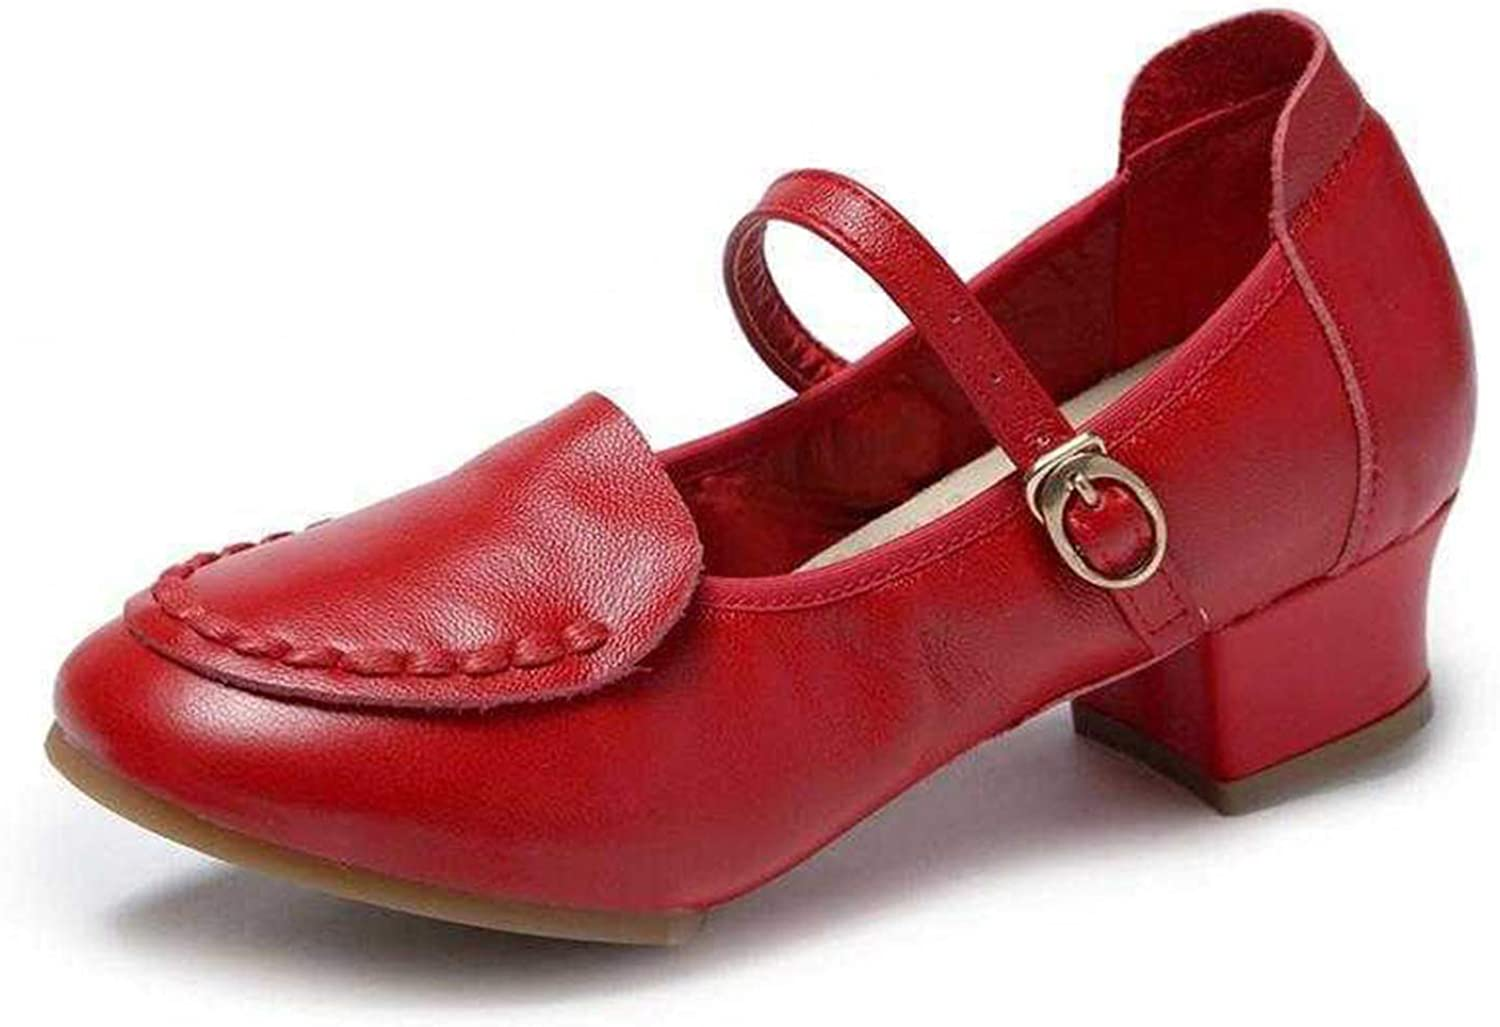 [Comfy] Women Closed Toe Low-Heeled Pumps Non-Slip Buckle Salsa Swing Dance shoes